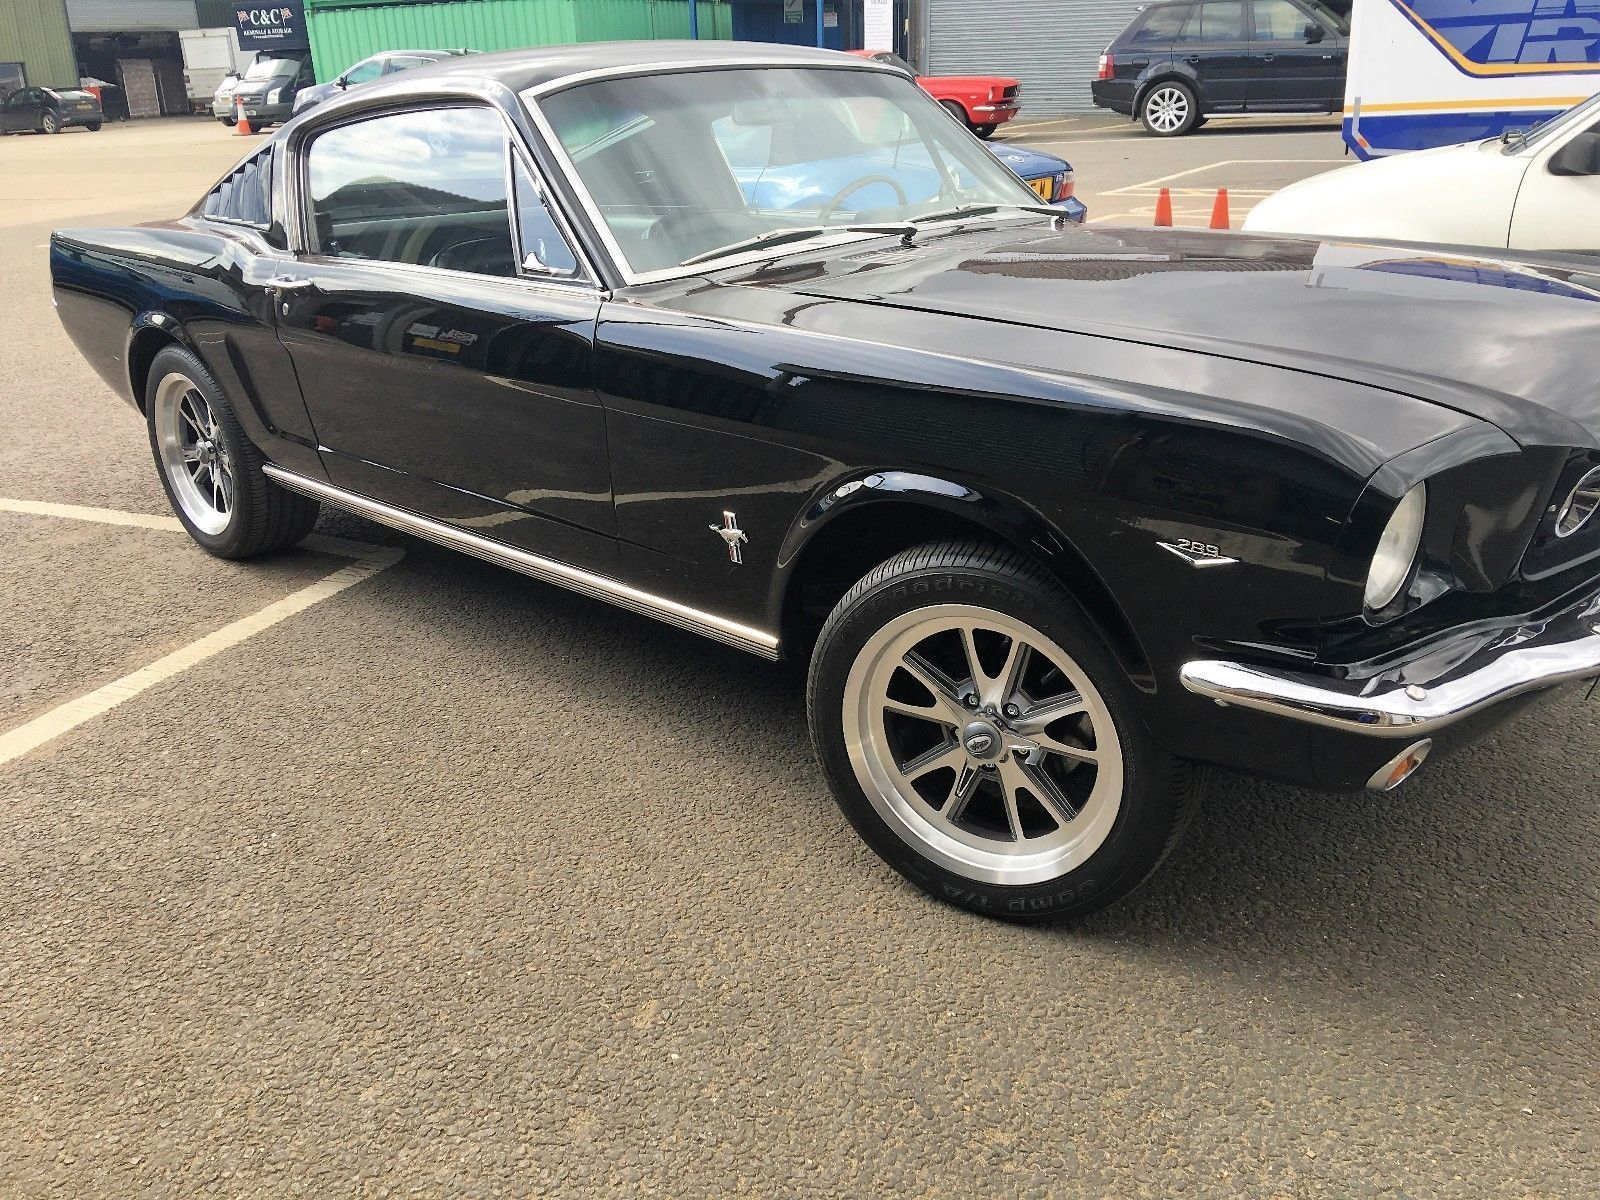 Ebay Ford Mustang Fastback 1965 Classiccars Cars Ford Mustang Fastback Ford Mustang Shelby Cobra Mustang Fastback